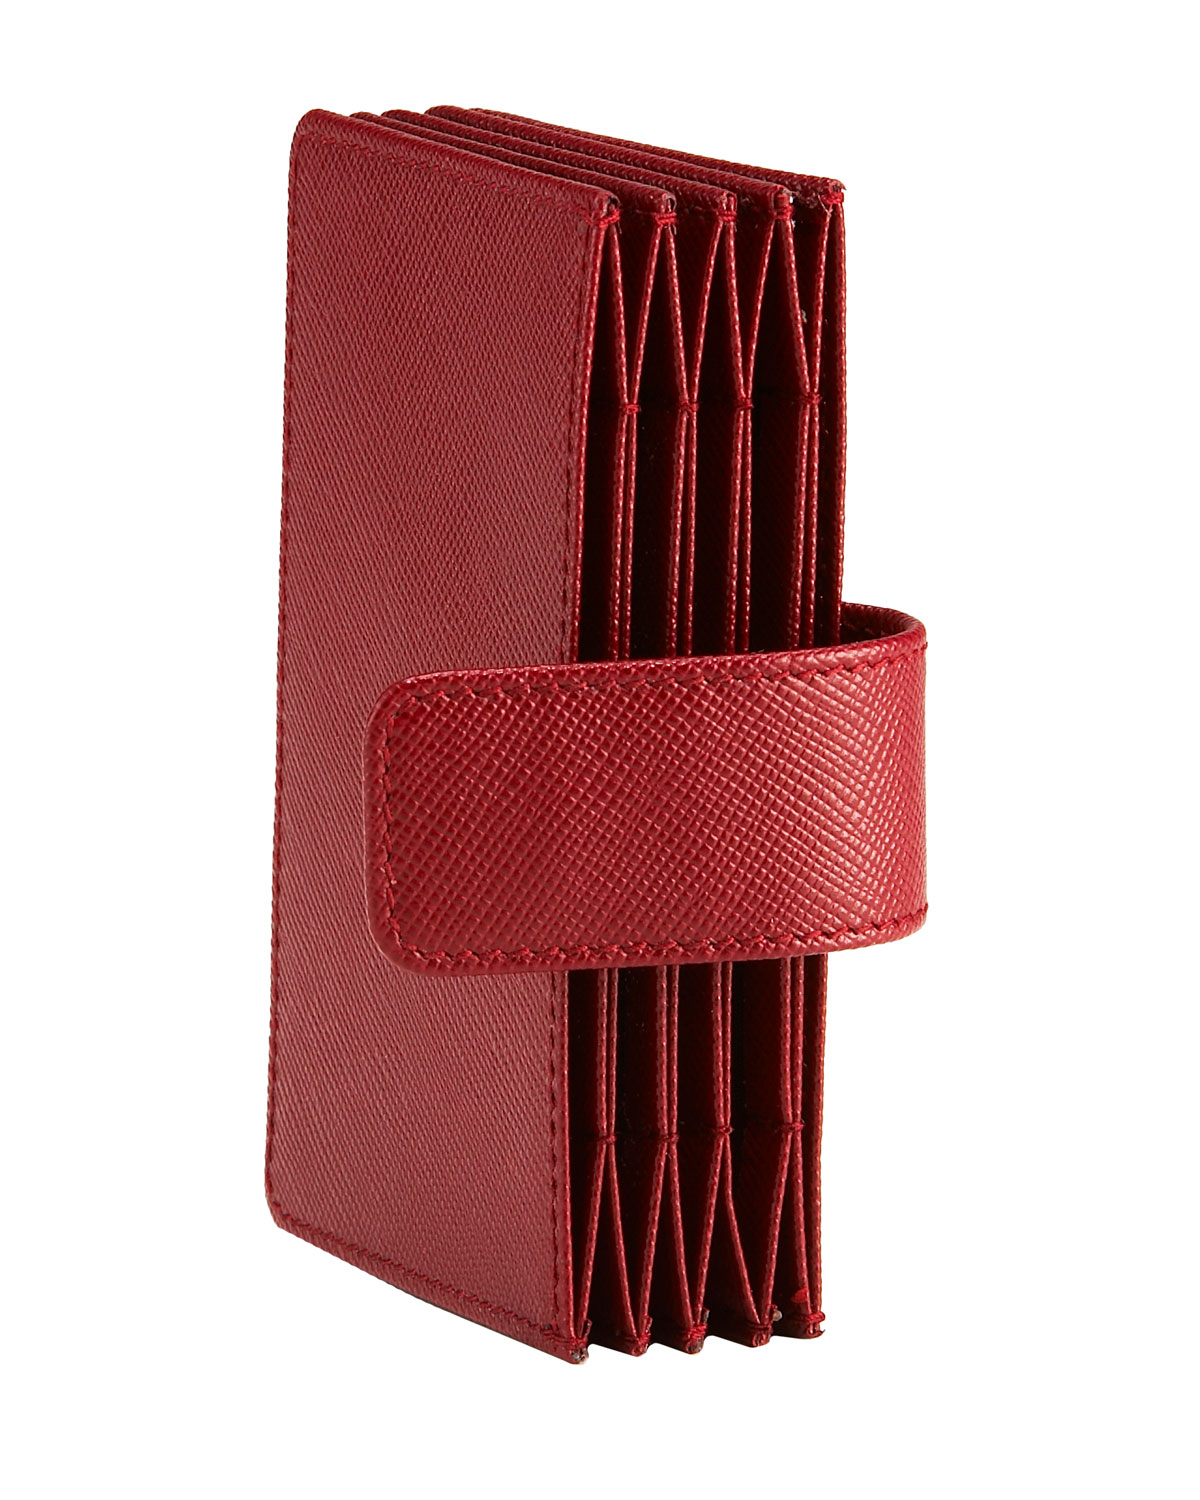 Lyst - Prada Saffiano Leather Accordion Card Case in Red